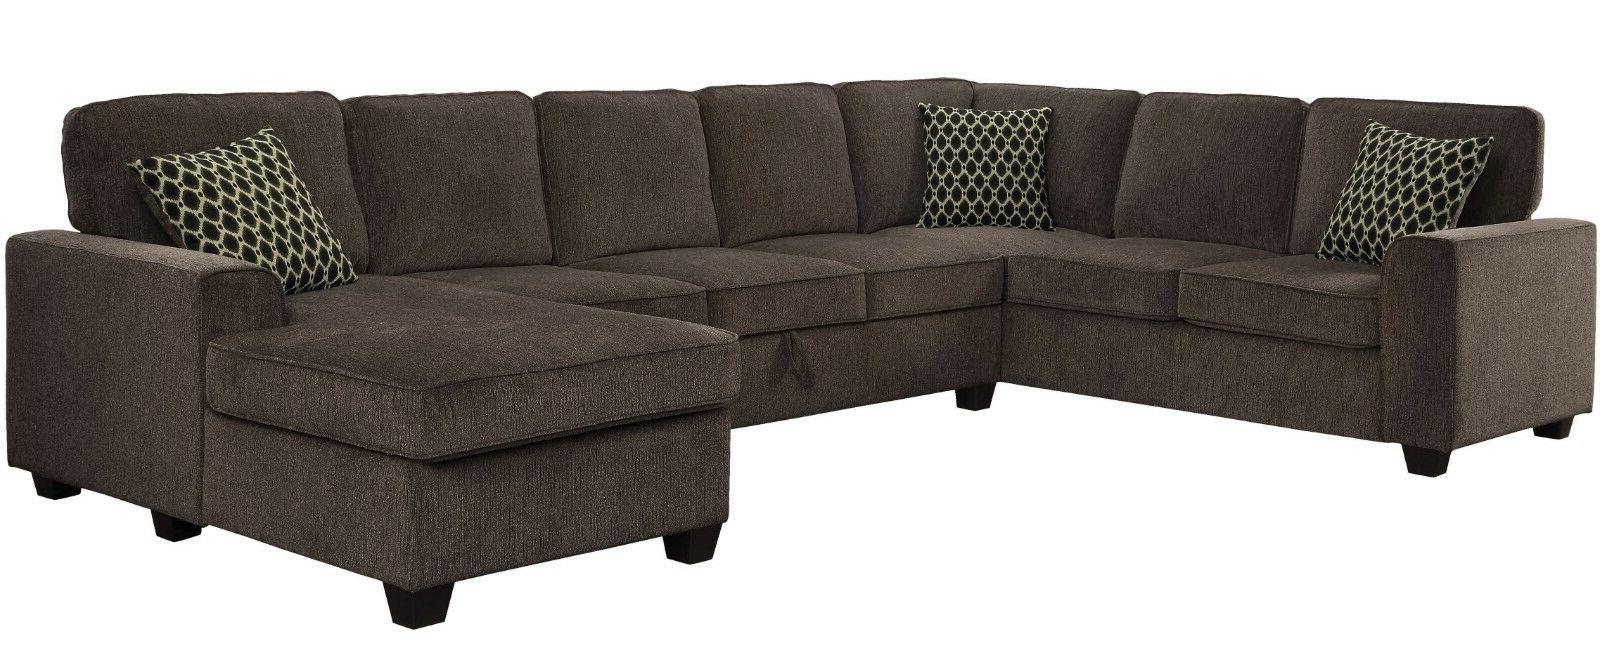 Transitional 3-Piece Fabric Sectional Sofa Storage